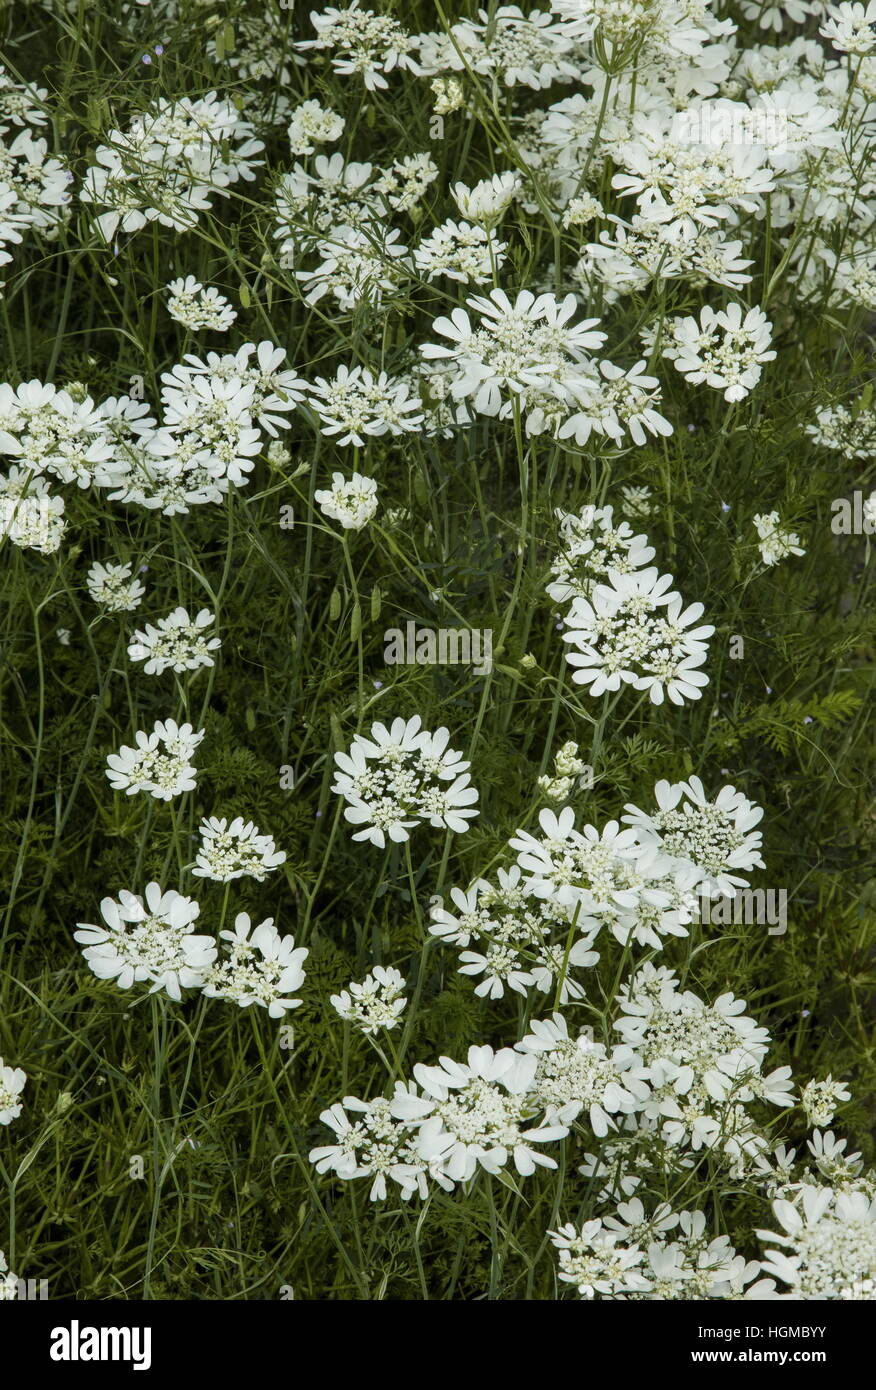 White laceflower, white lace flower, Orlaya grandiflora Stock Photo